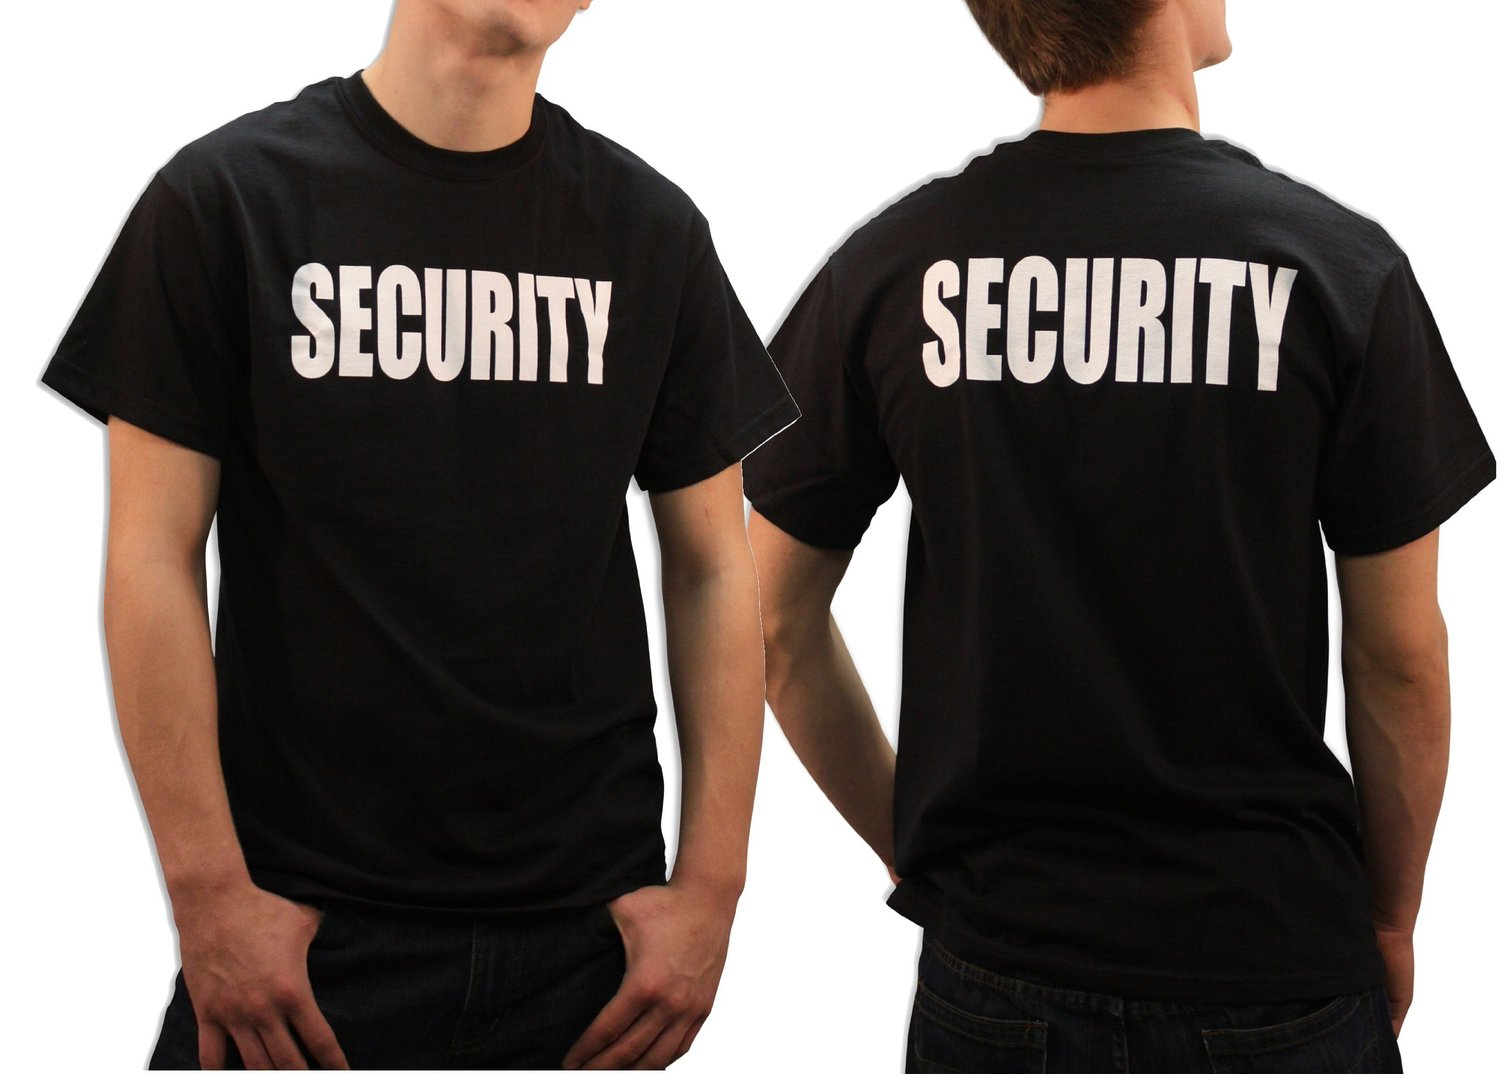 Official security men t shirt print on front back cotton black o neck